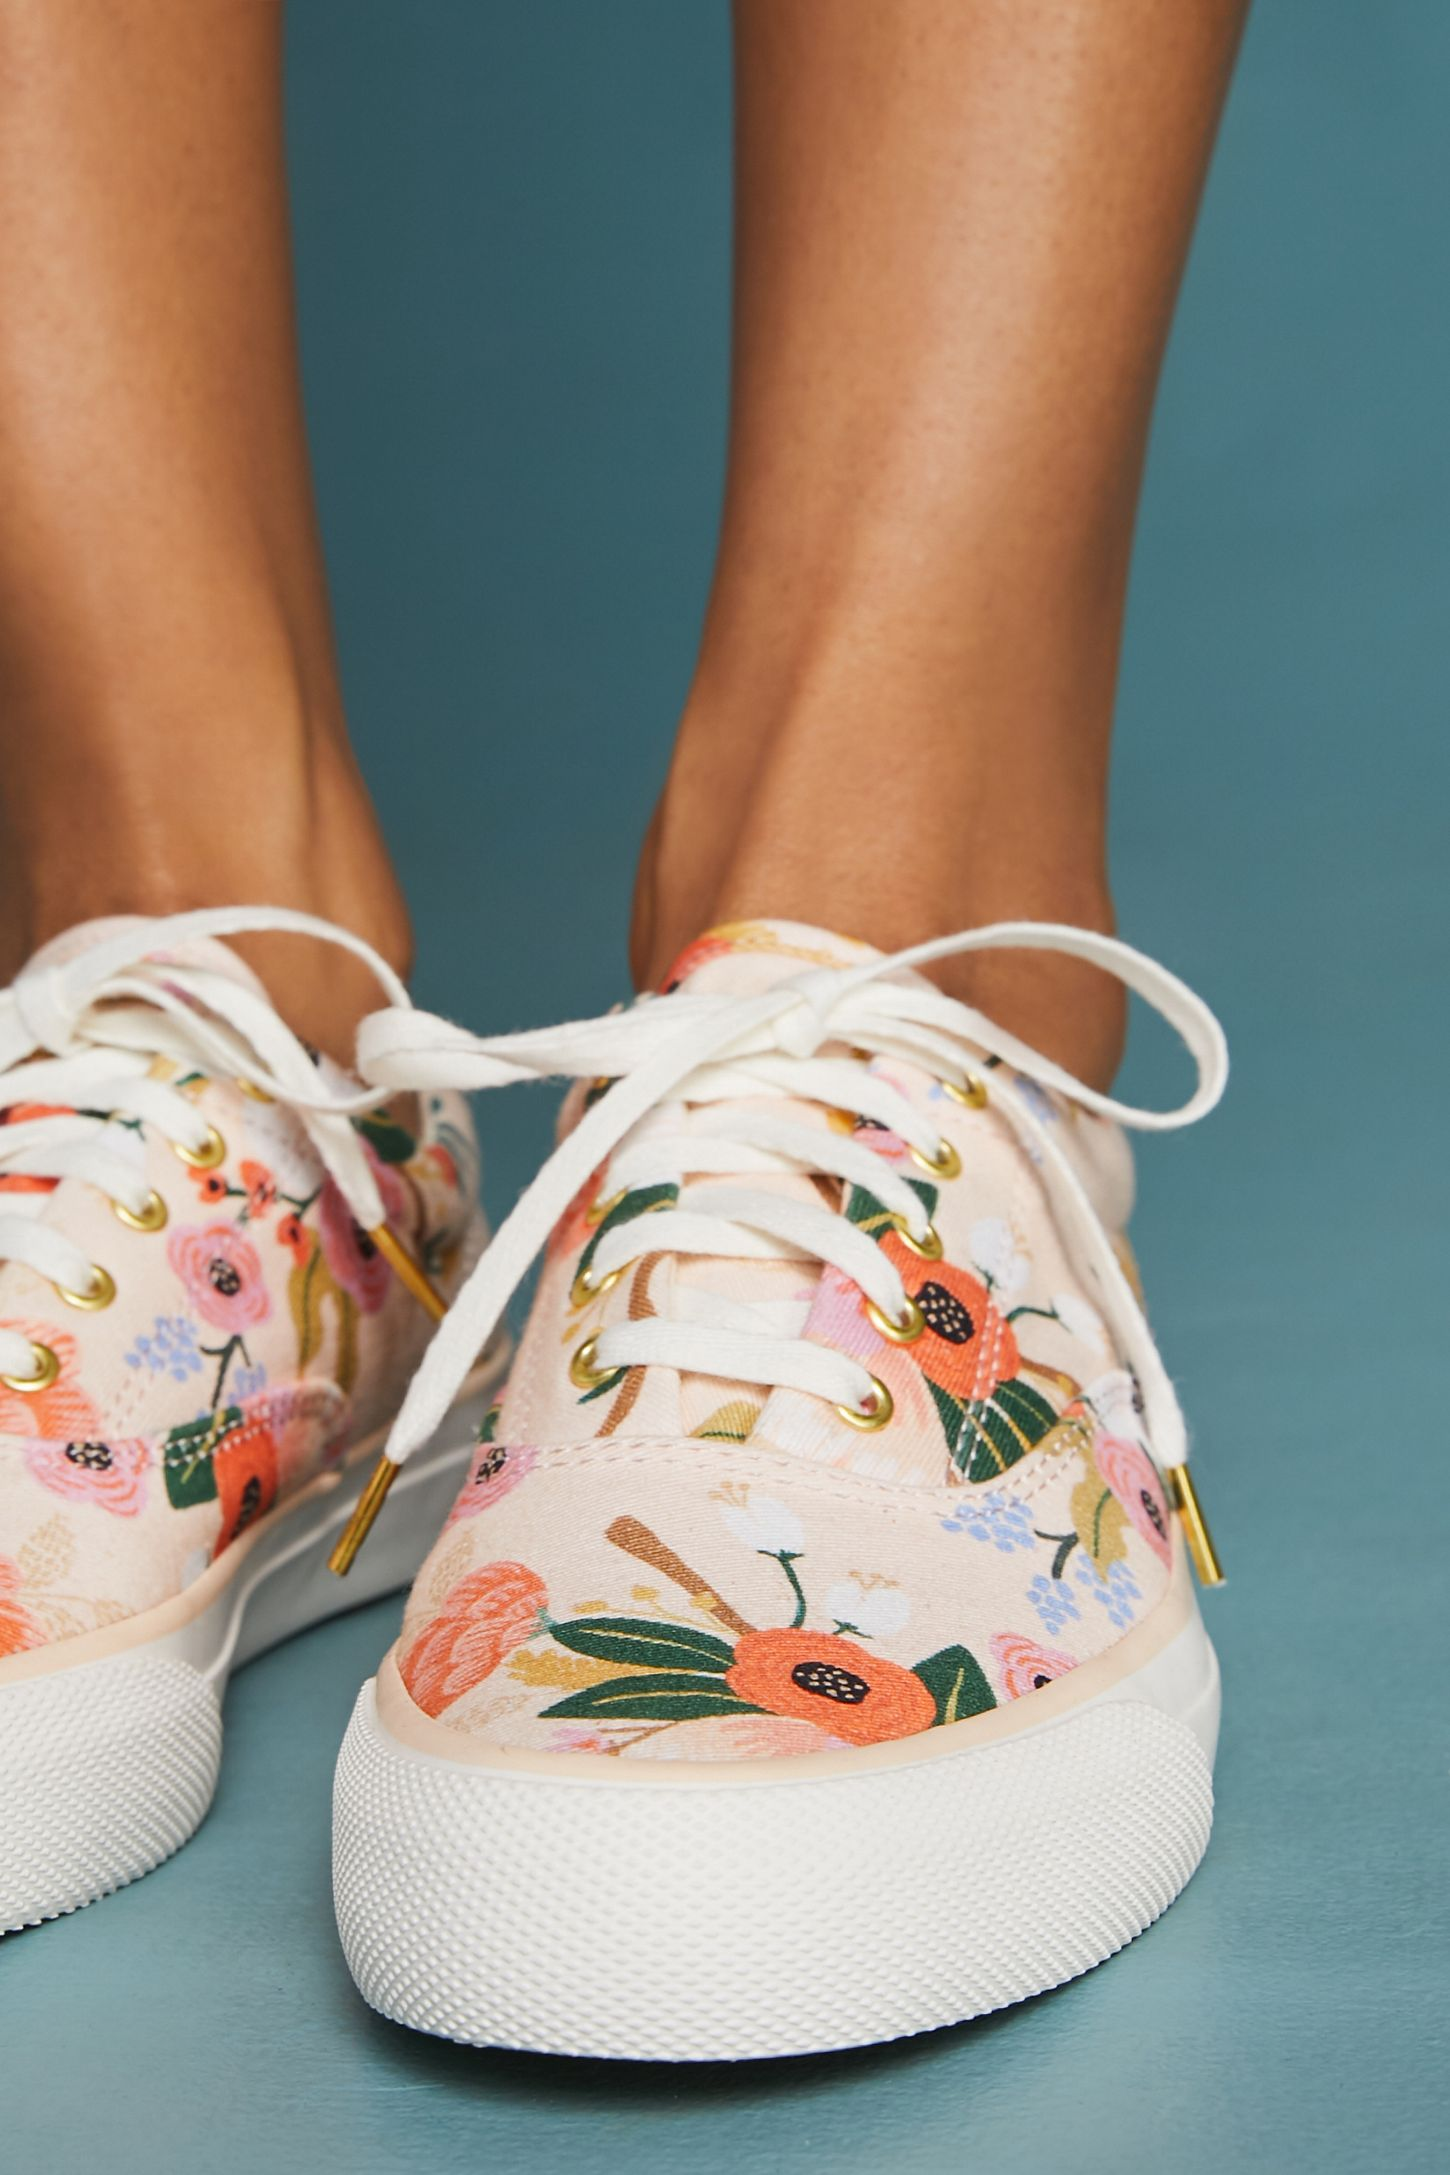 89adeac24 Keds x Rifle Paper Co. Lively Sneakers